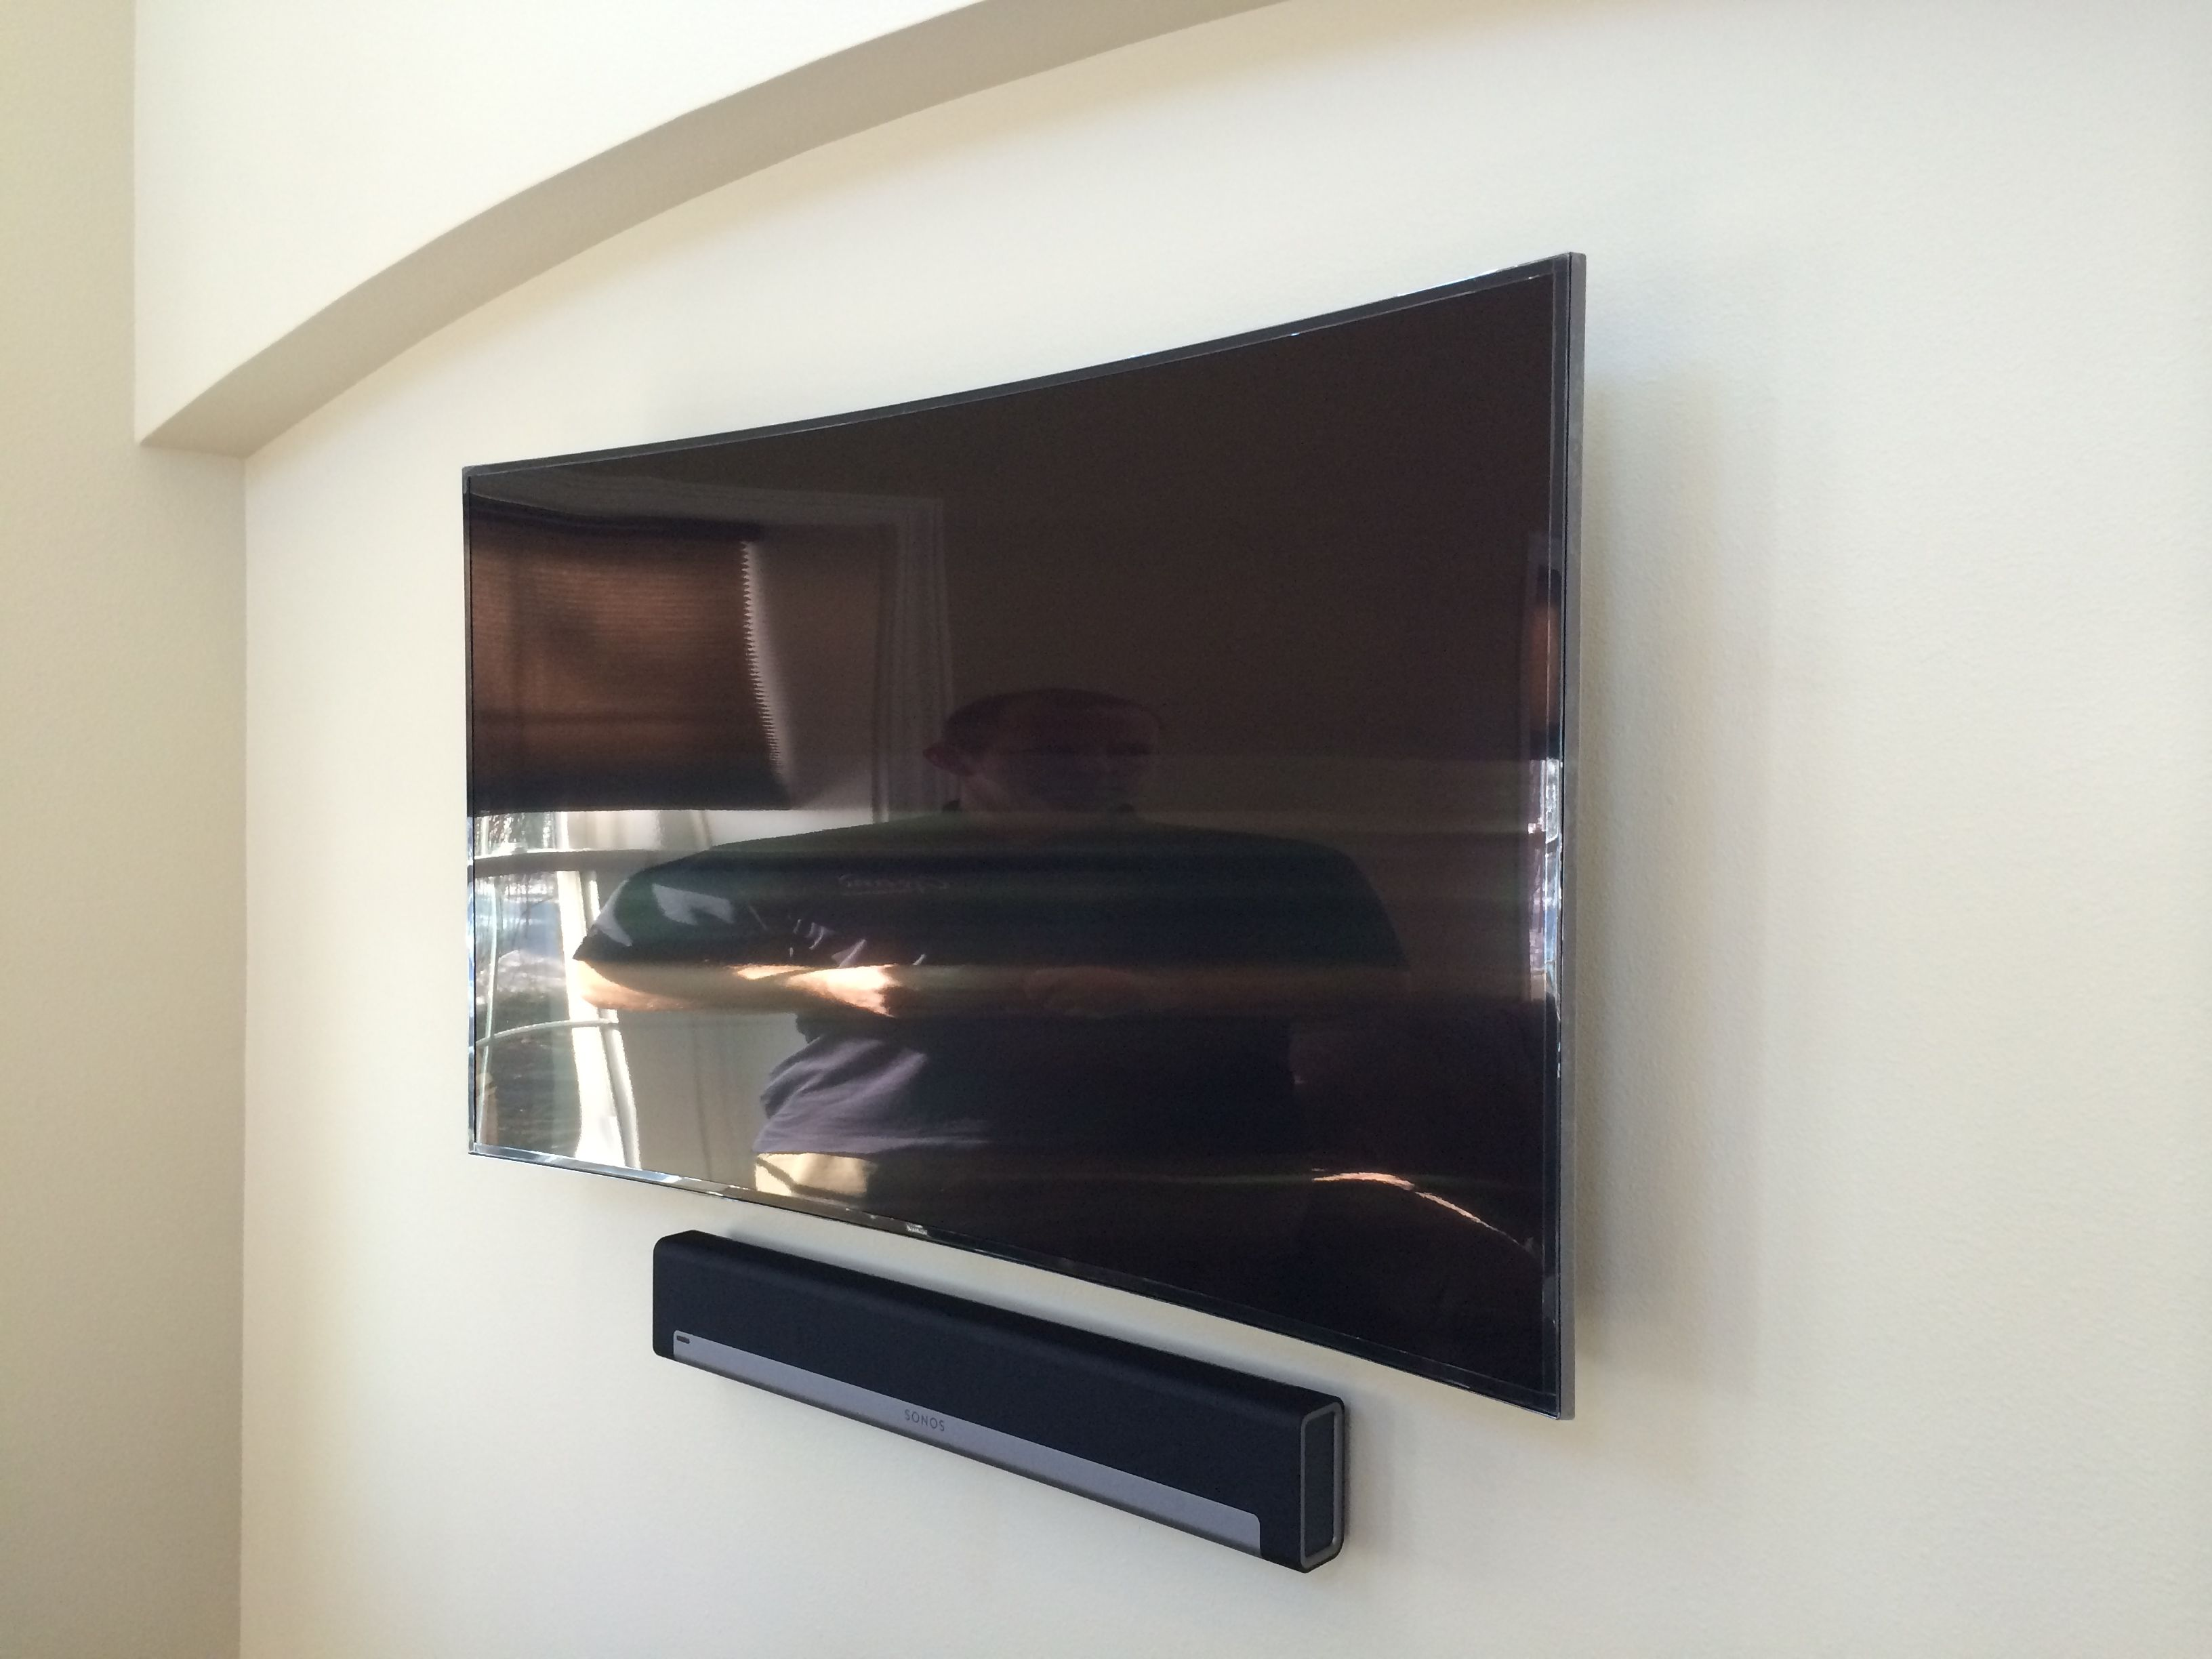 Sonos Thuisbioscoop Curved Flat Panel Tv Mounted On A Wall With Sonos Playbar Home